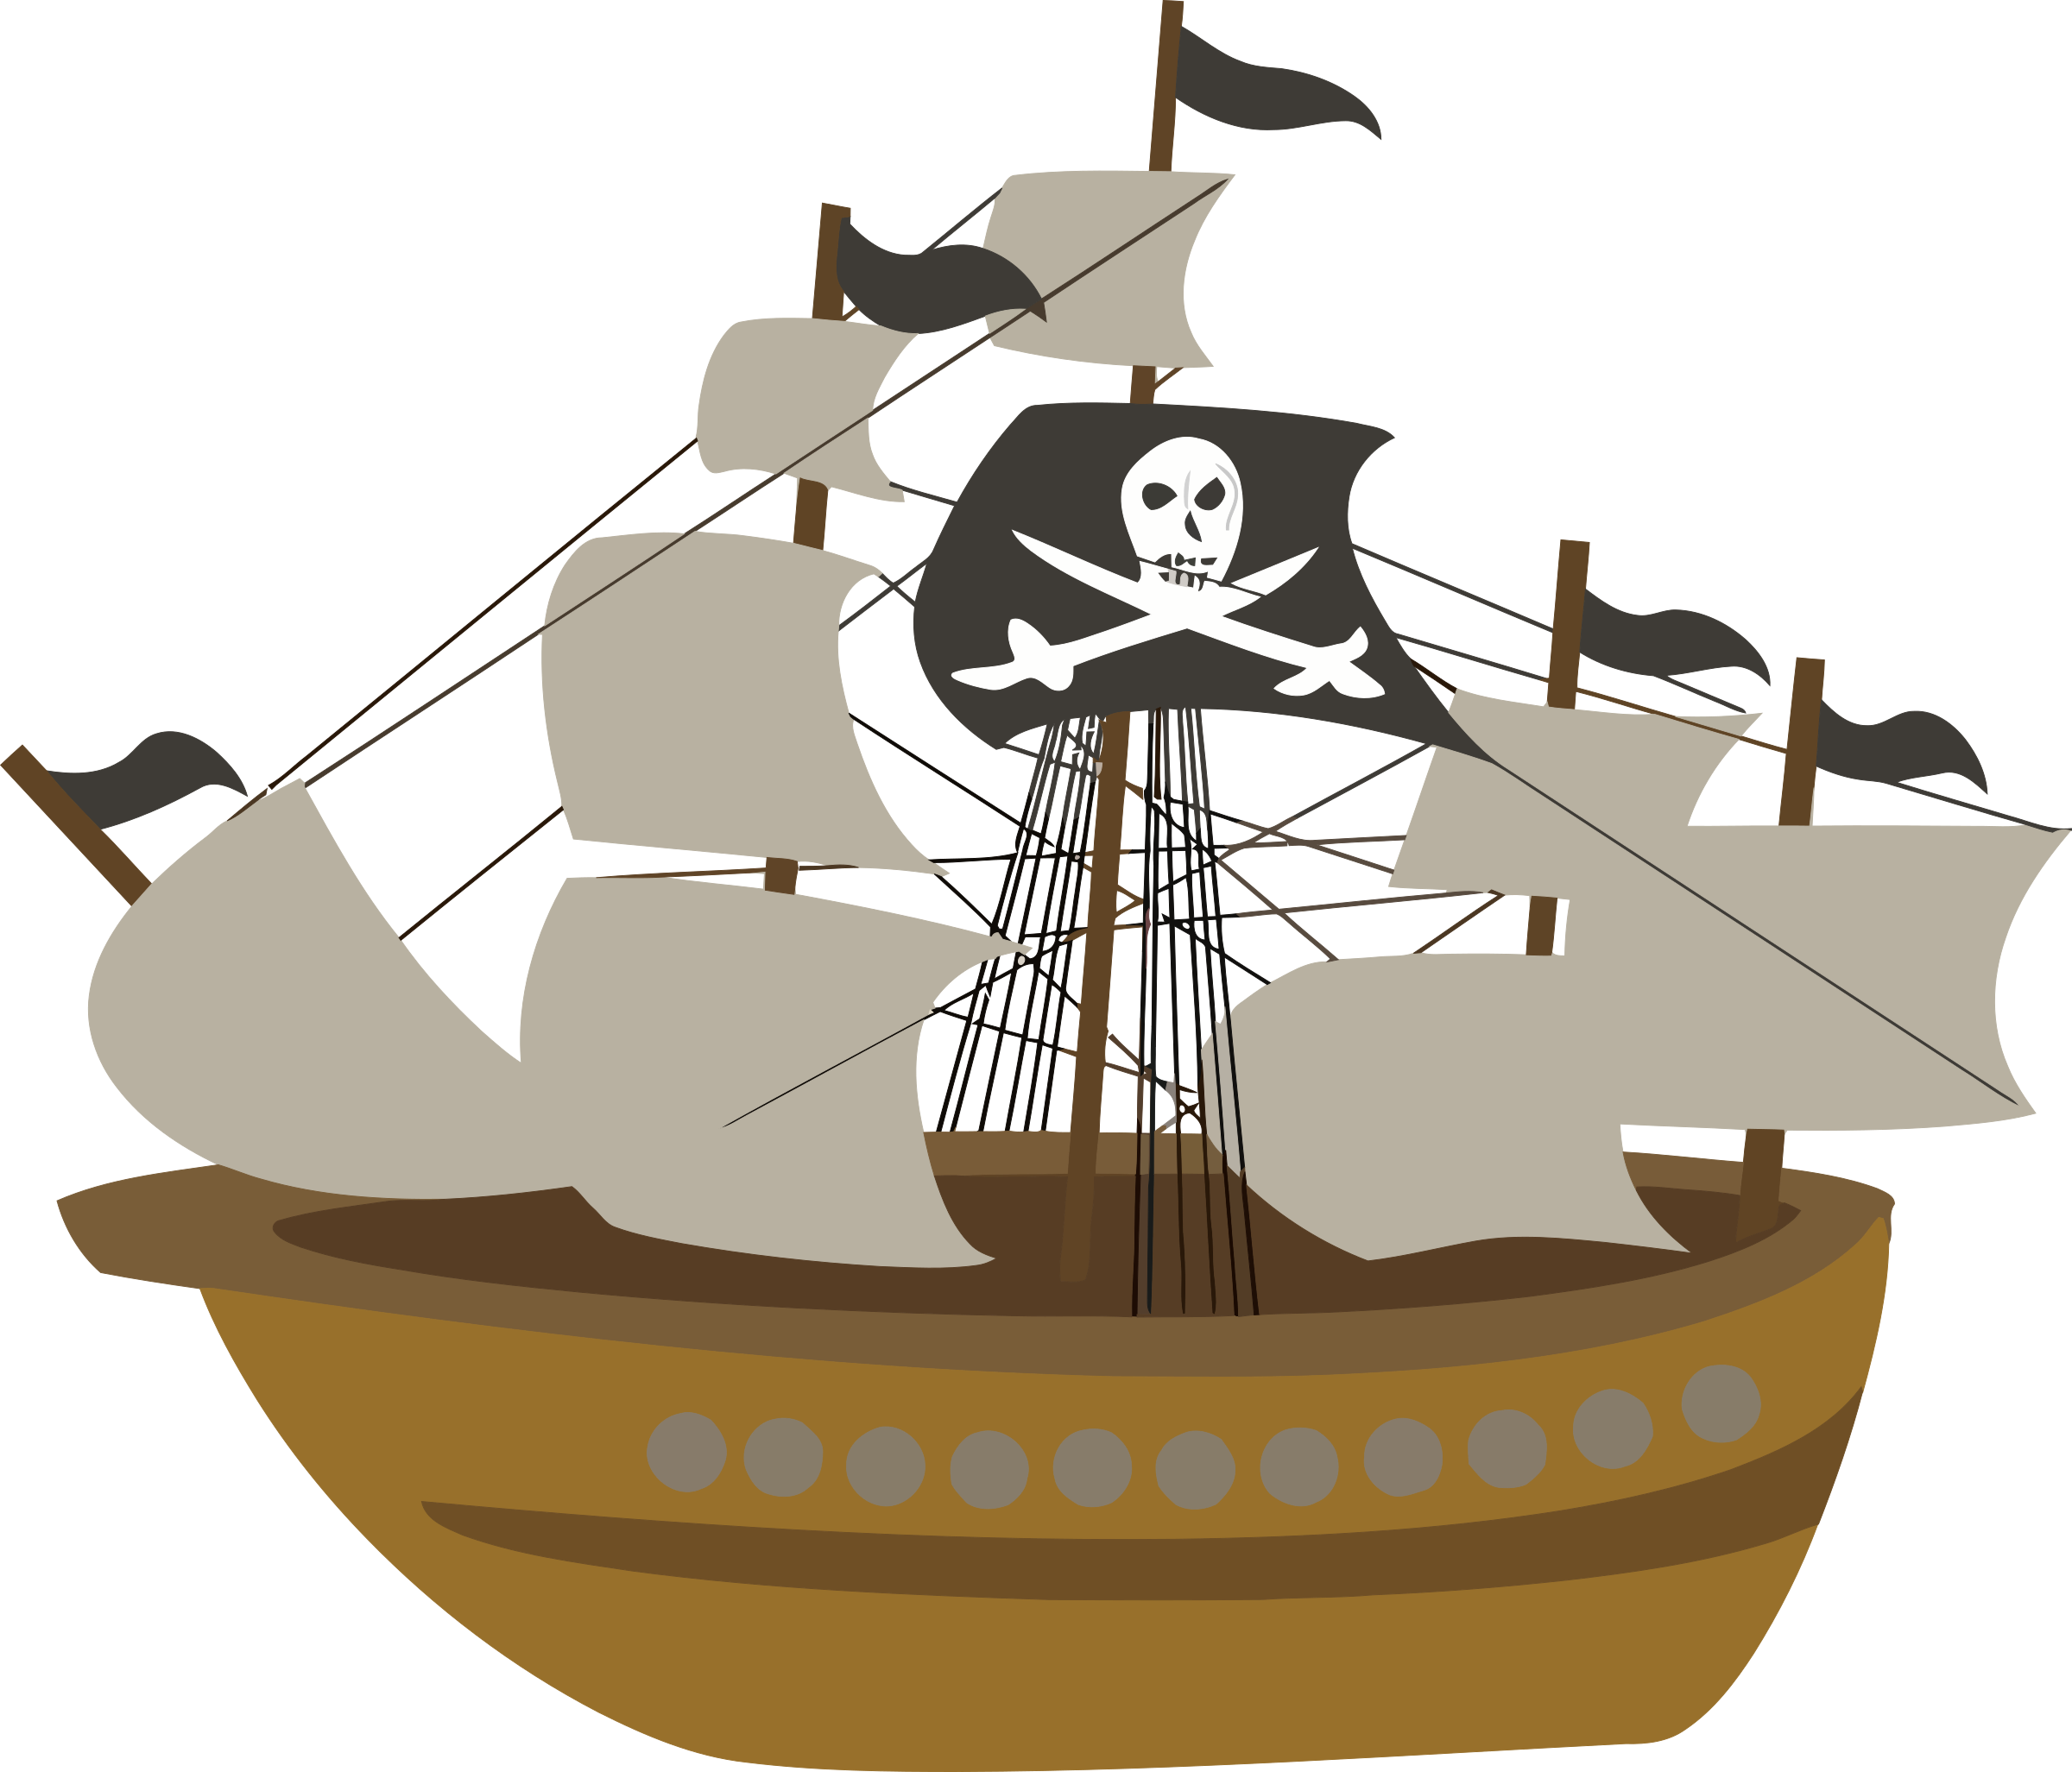 Pirate ship big image. Mayflower clipart caravels